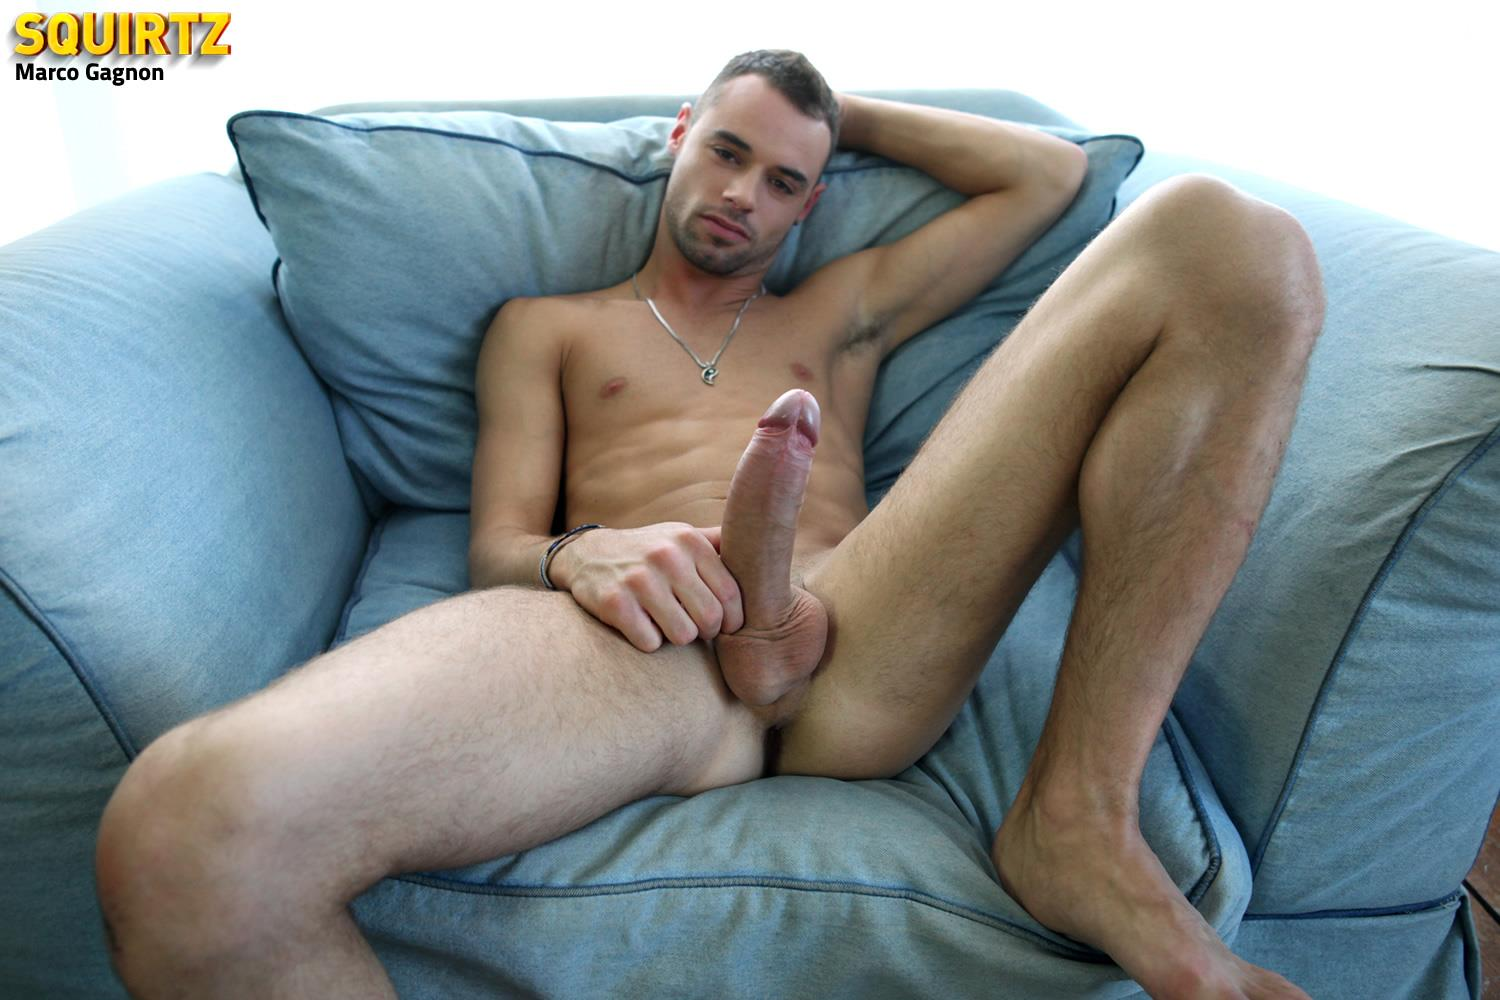 Squirtz-Marco-Gagnon-Twink-With-A-Massive-Uncut-Cock-Jerk-Off-Amateur-Gay-Porn-18 Young and Hung Marco Gagnon Stokes His Massive Uncut Cock